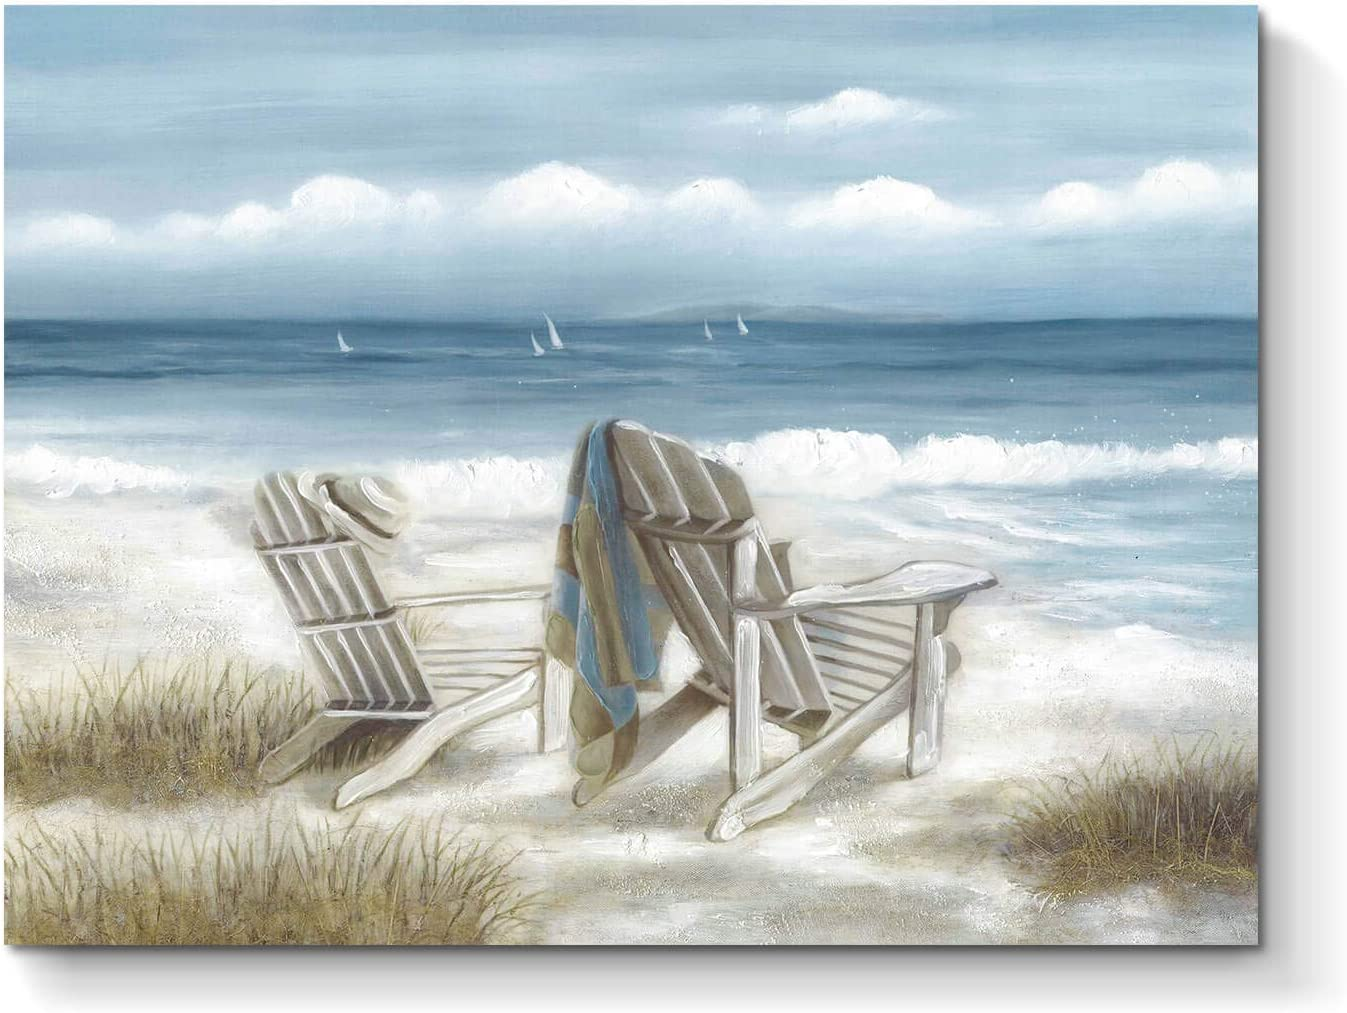 Abstract Seascape Canvas Wall Art: Beach Chair on Sand Painting Print for Bedroom ( 24'' x 18'' x 1 Panel )